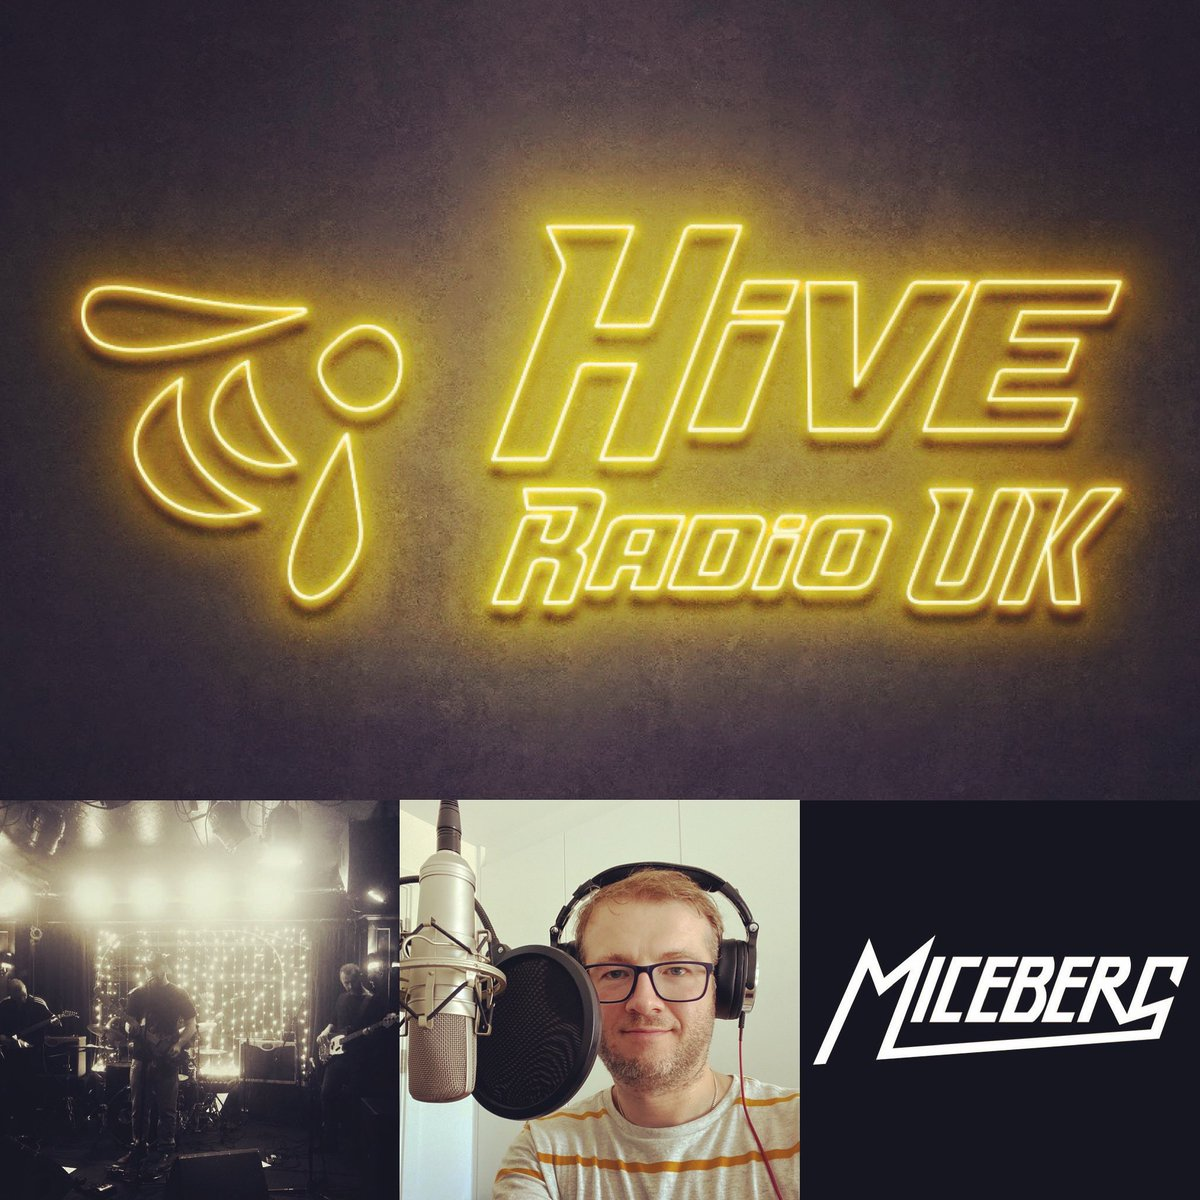 LIVE at 5pm: The 90s Chartshow moves to Saturday evening this week. Featuring a Top 20 from Nov'98, new music from @micebergband, Retro Box Office with @mrjimifletcher & more. Listen at  & at  #90svibes #newmusicsaturday #manchester